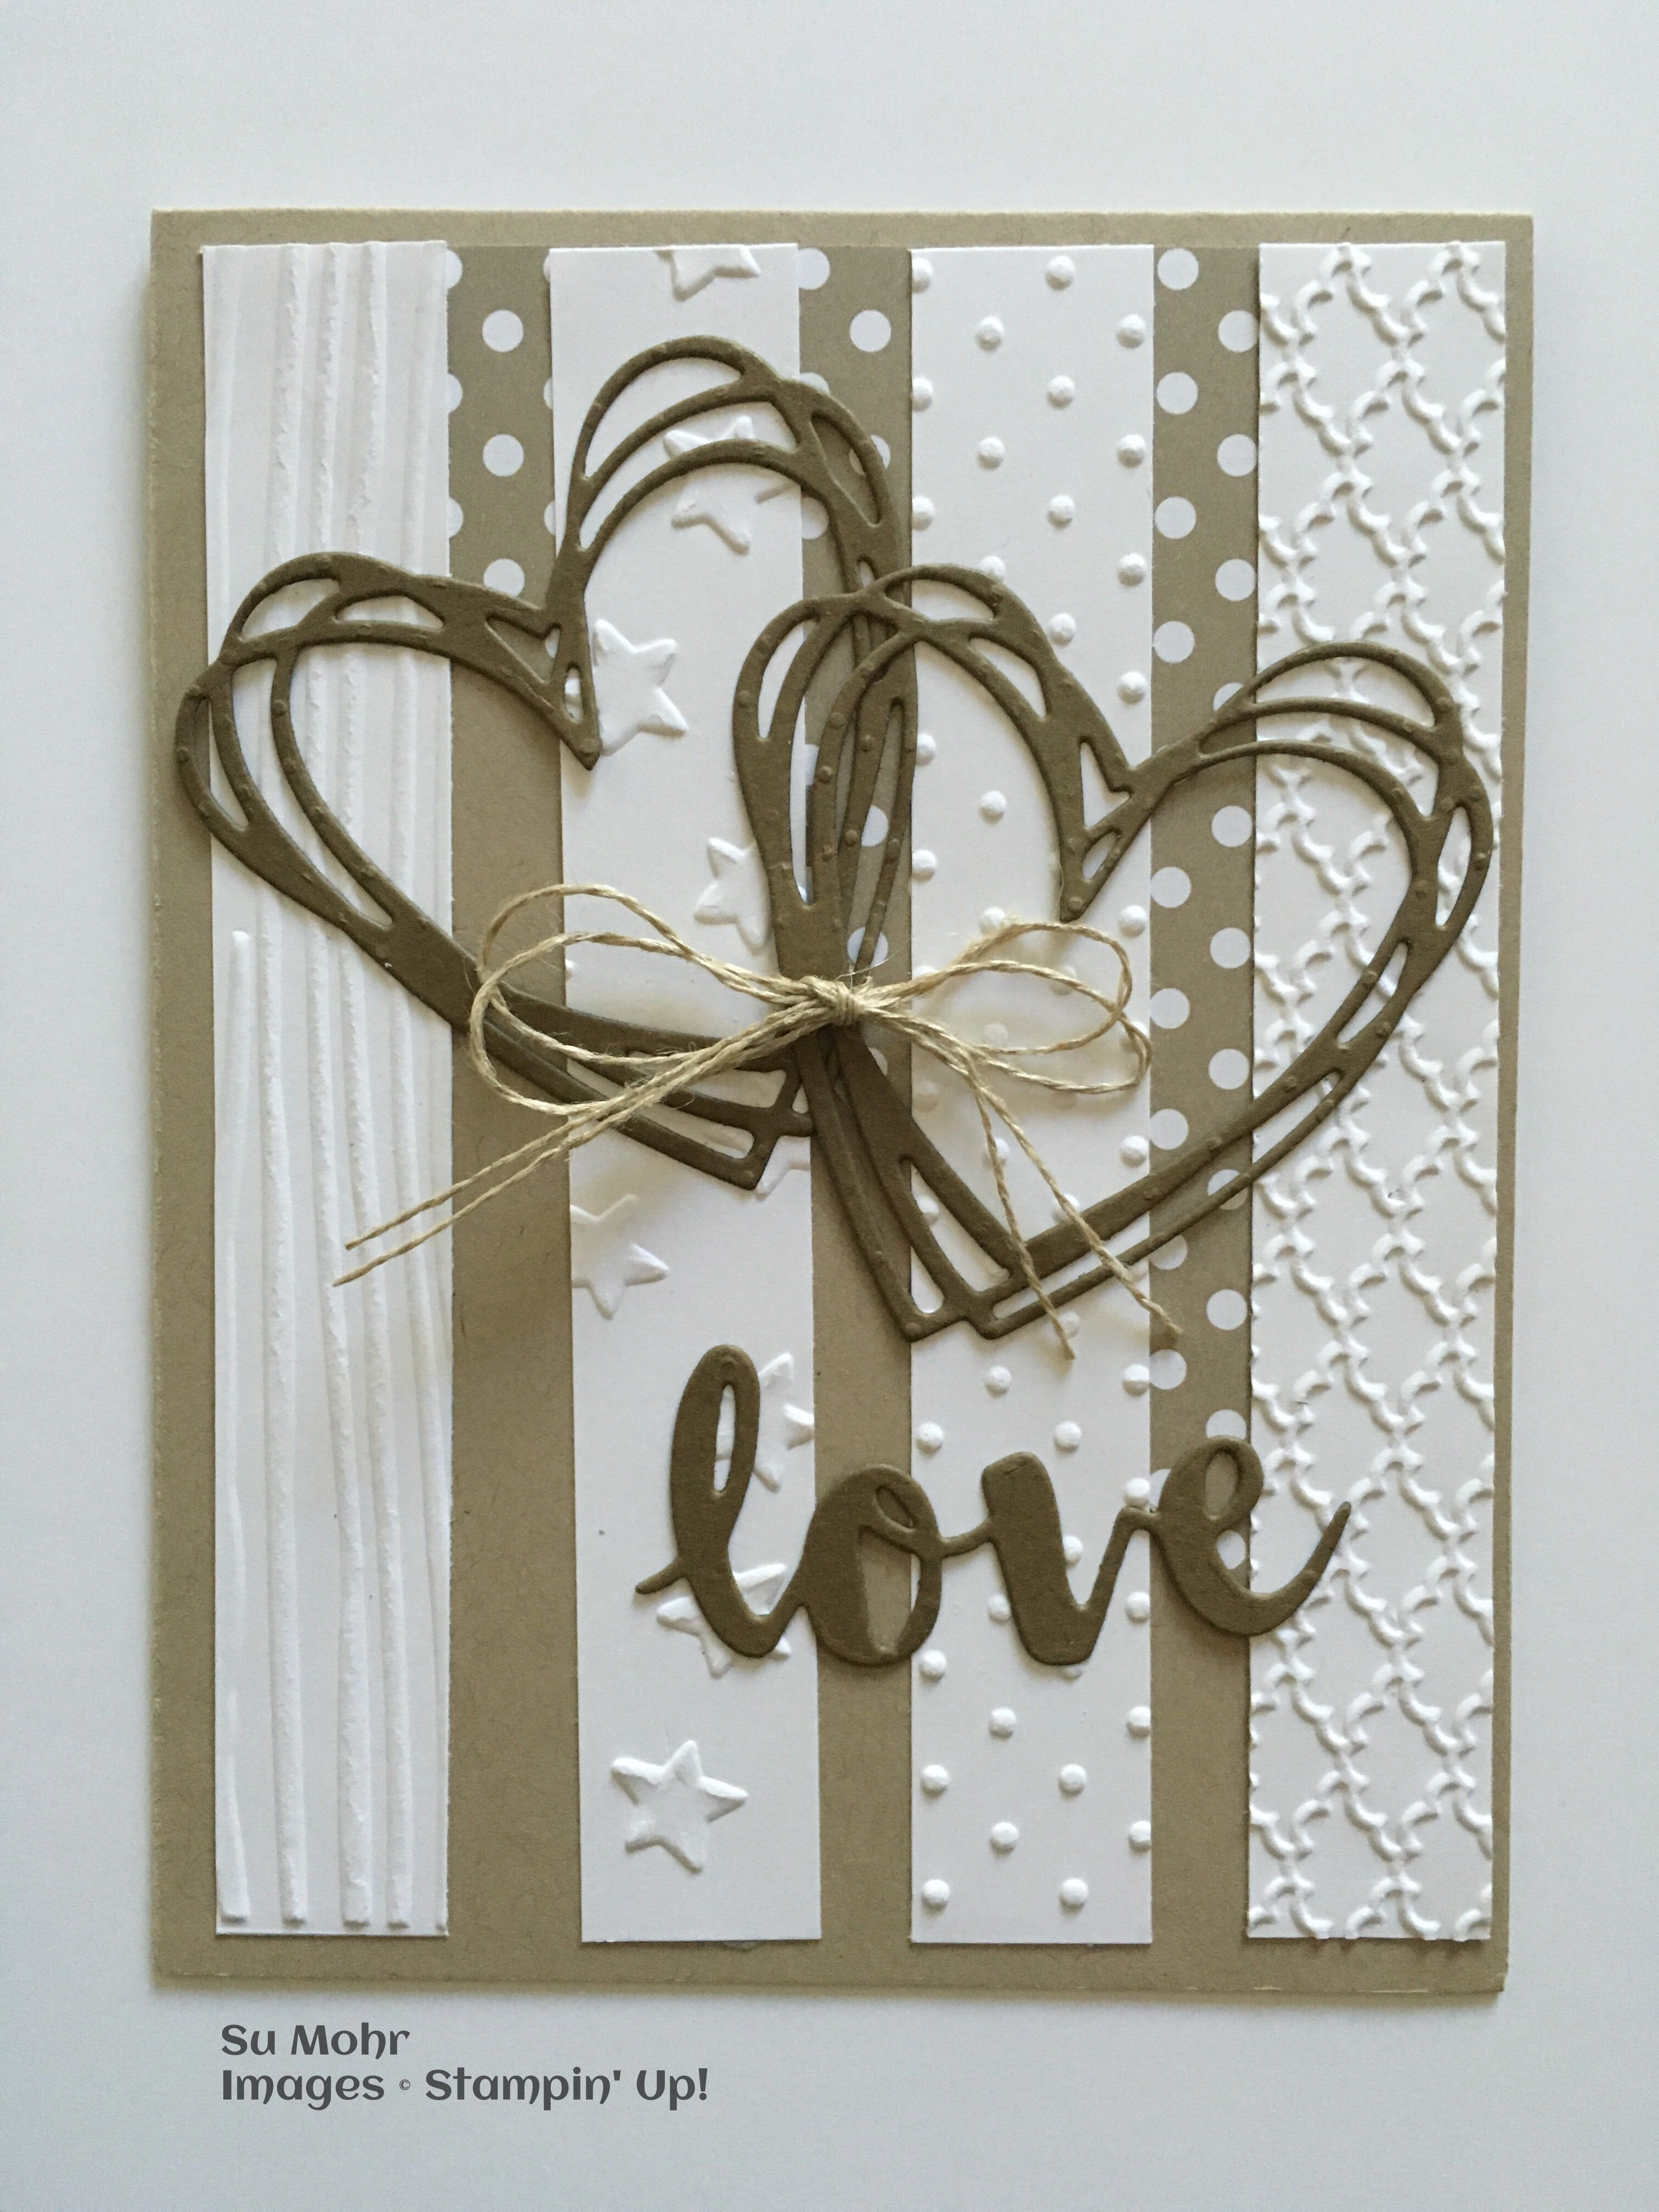 id=571597http://www.stampinup.net/esuite/home/sumohr/project ...